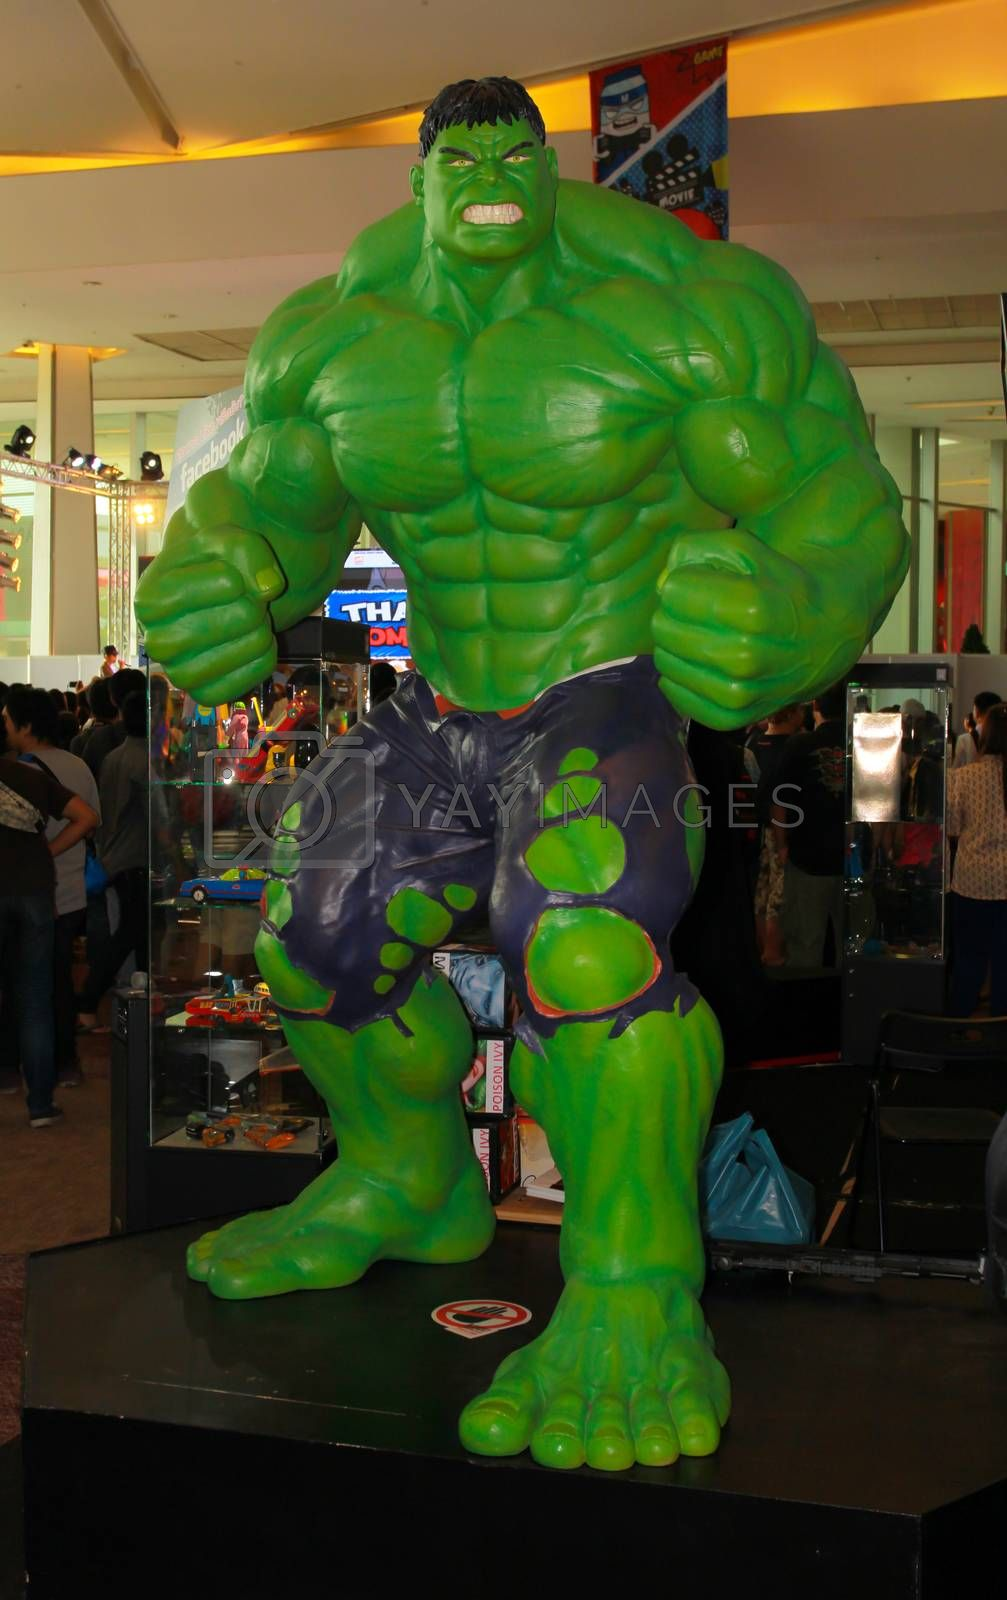 Royalty free image of A model of the character Hulk from the movies and comics 2 by redthirteen